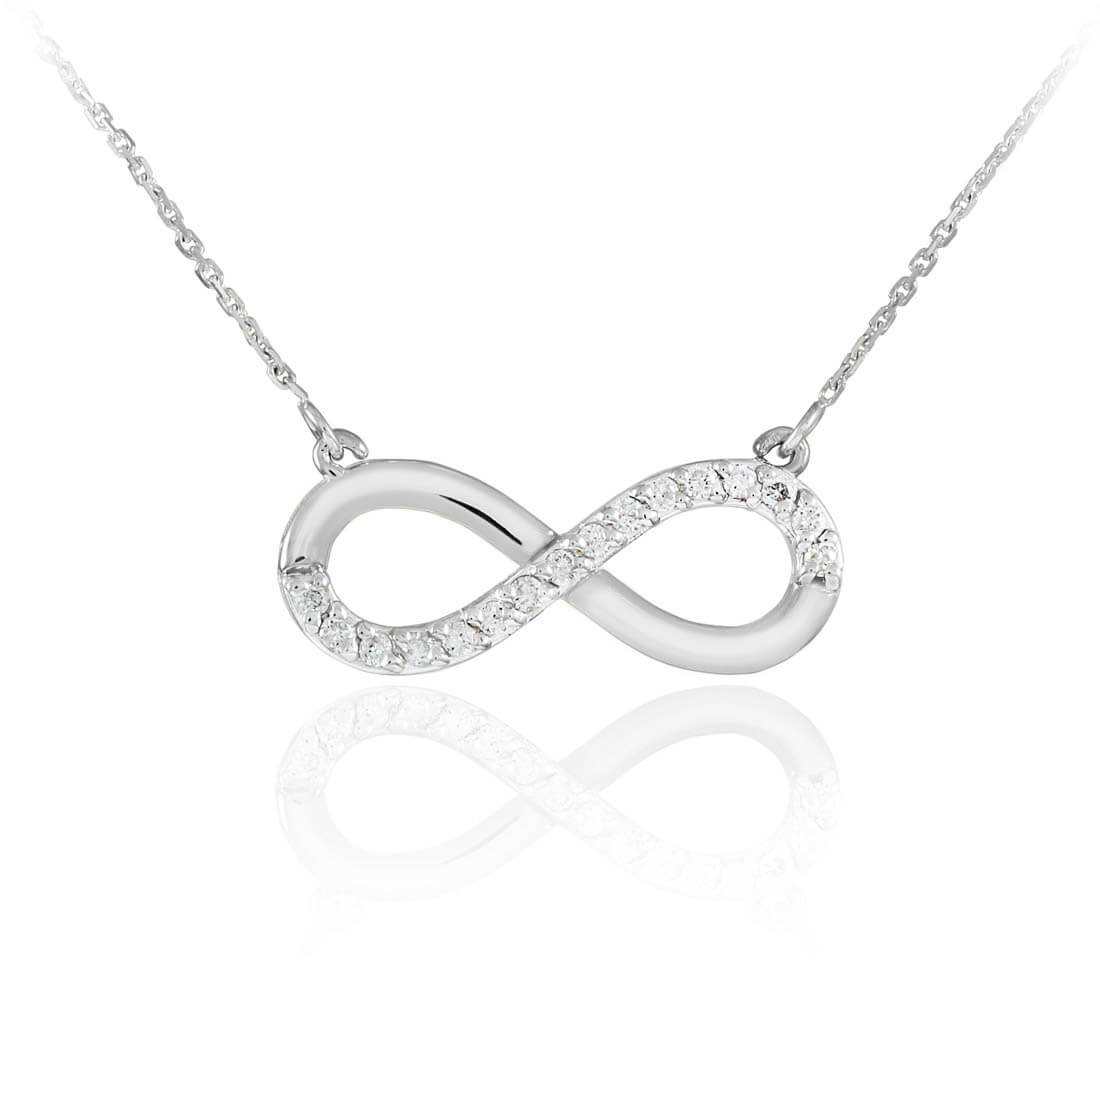 CZ Infinity Pendant Necklace in Sterling Silver